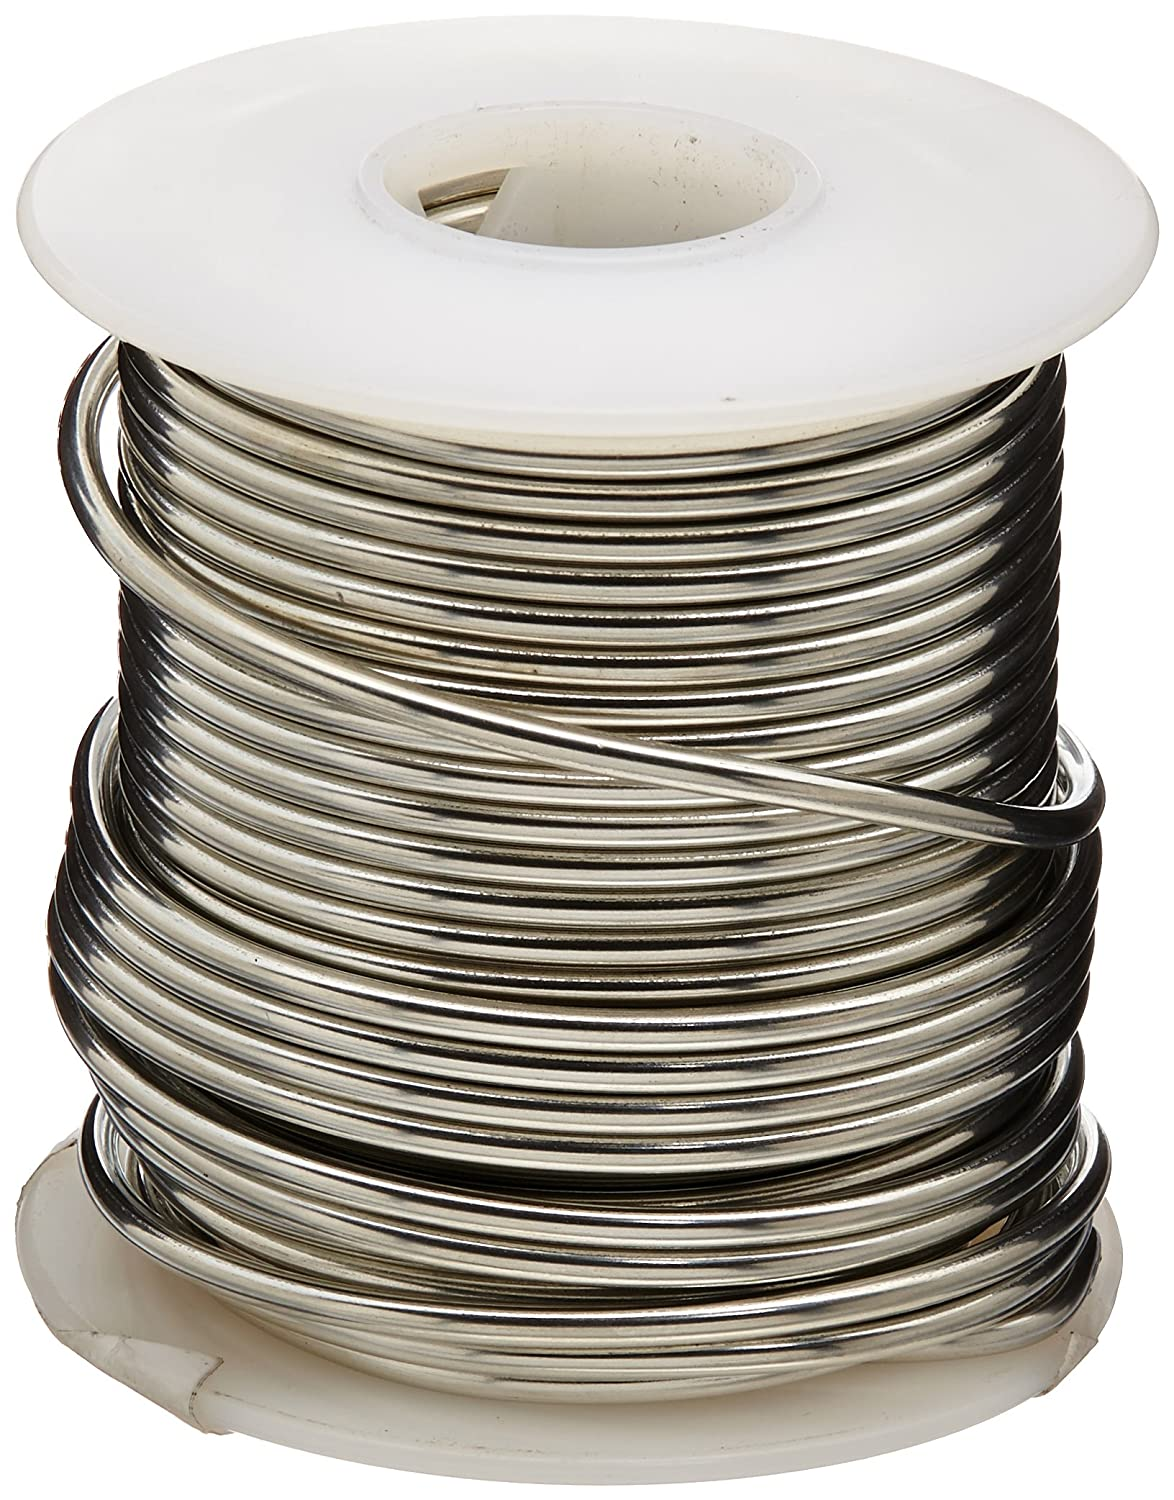 Tinned Copper Wire: Electronic Component Wire: Amazon.com ...